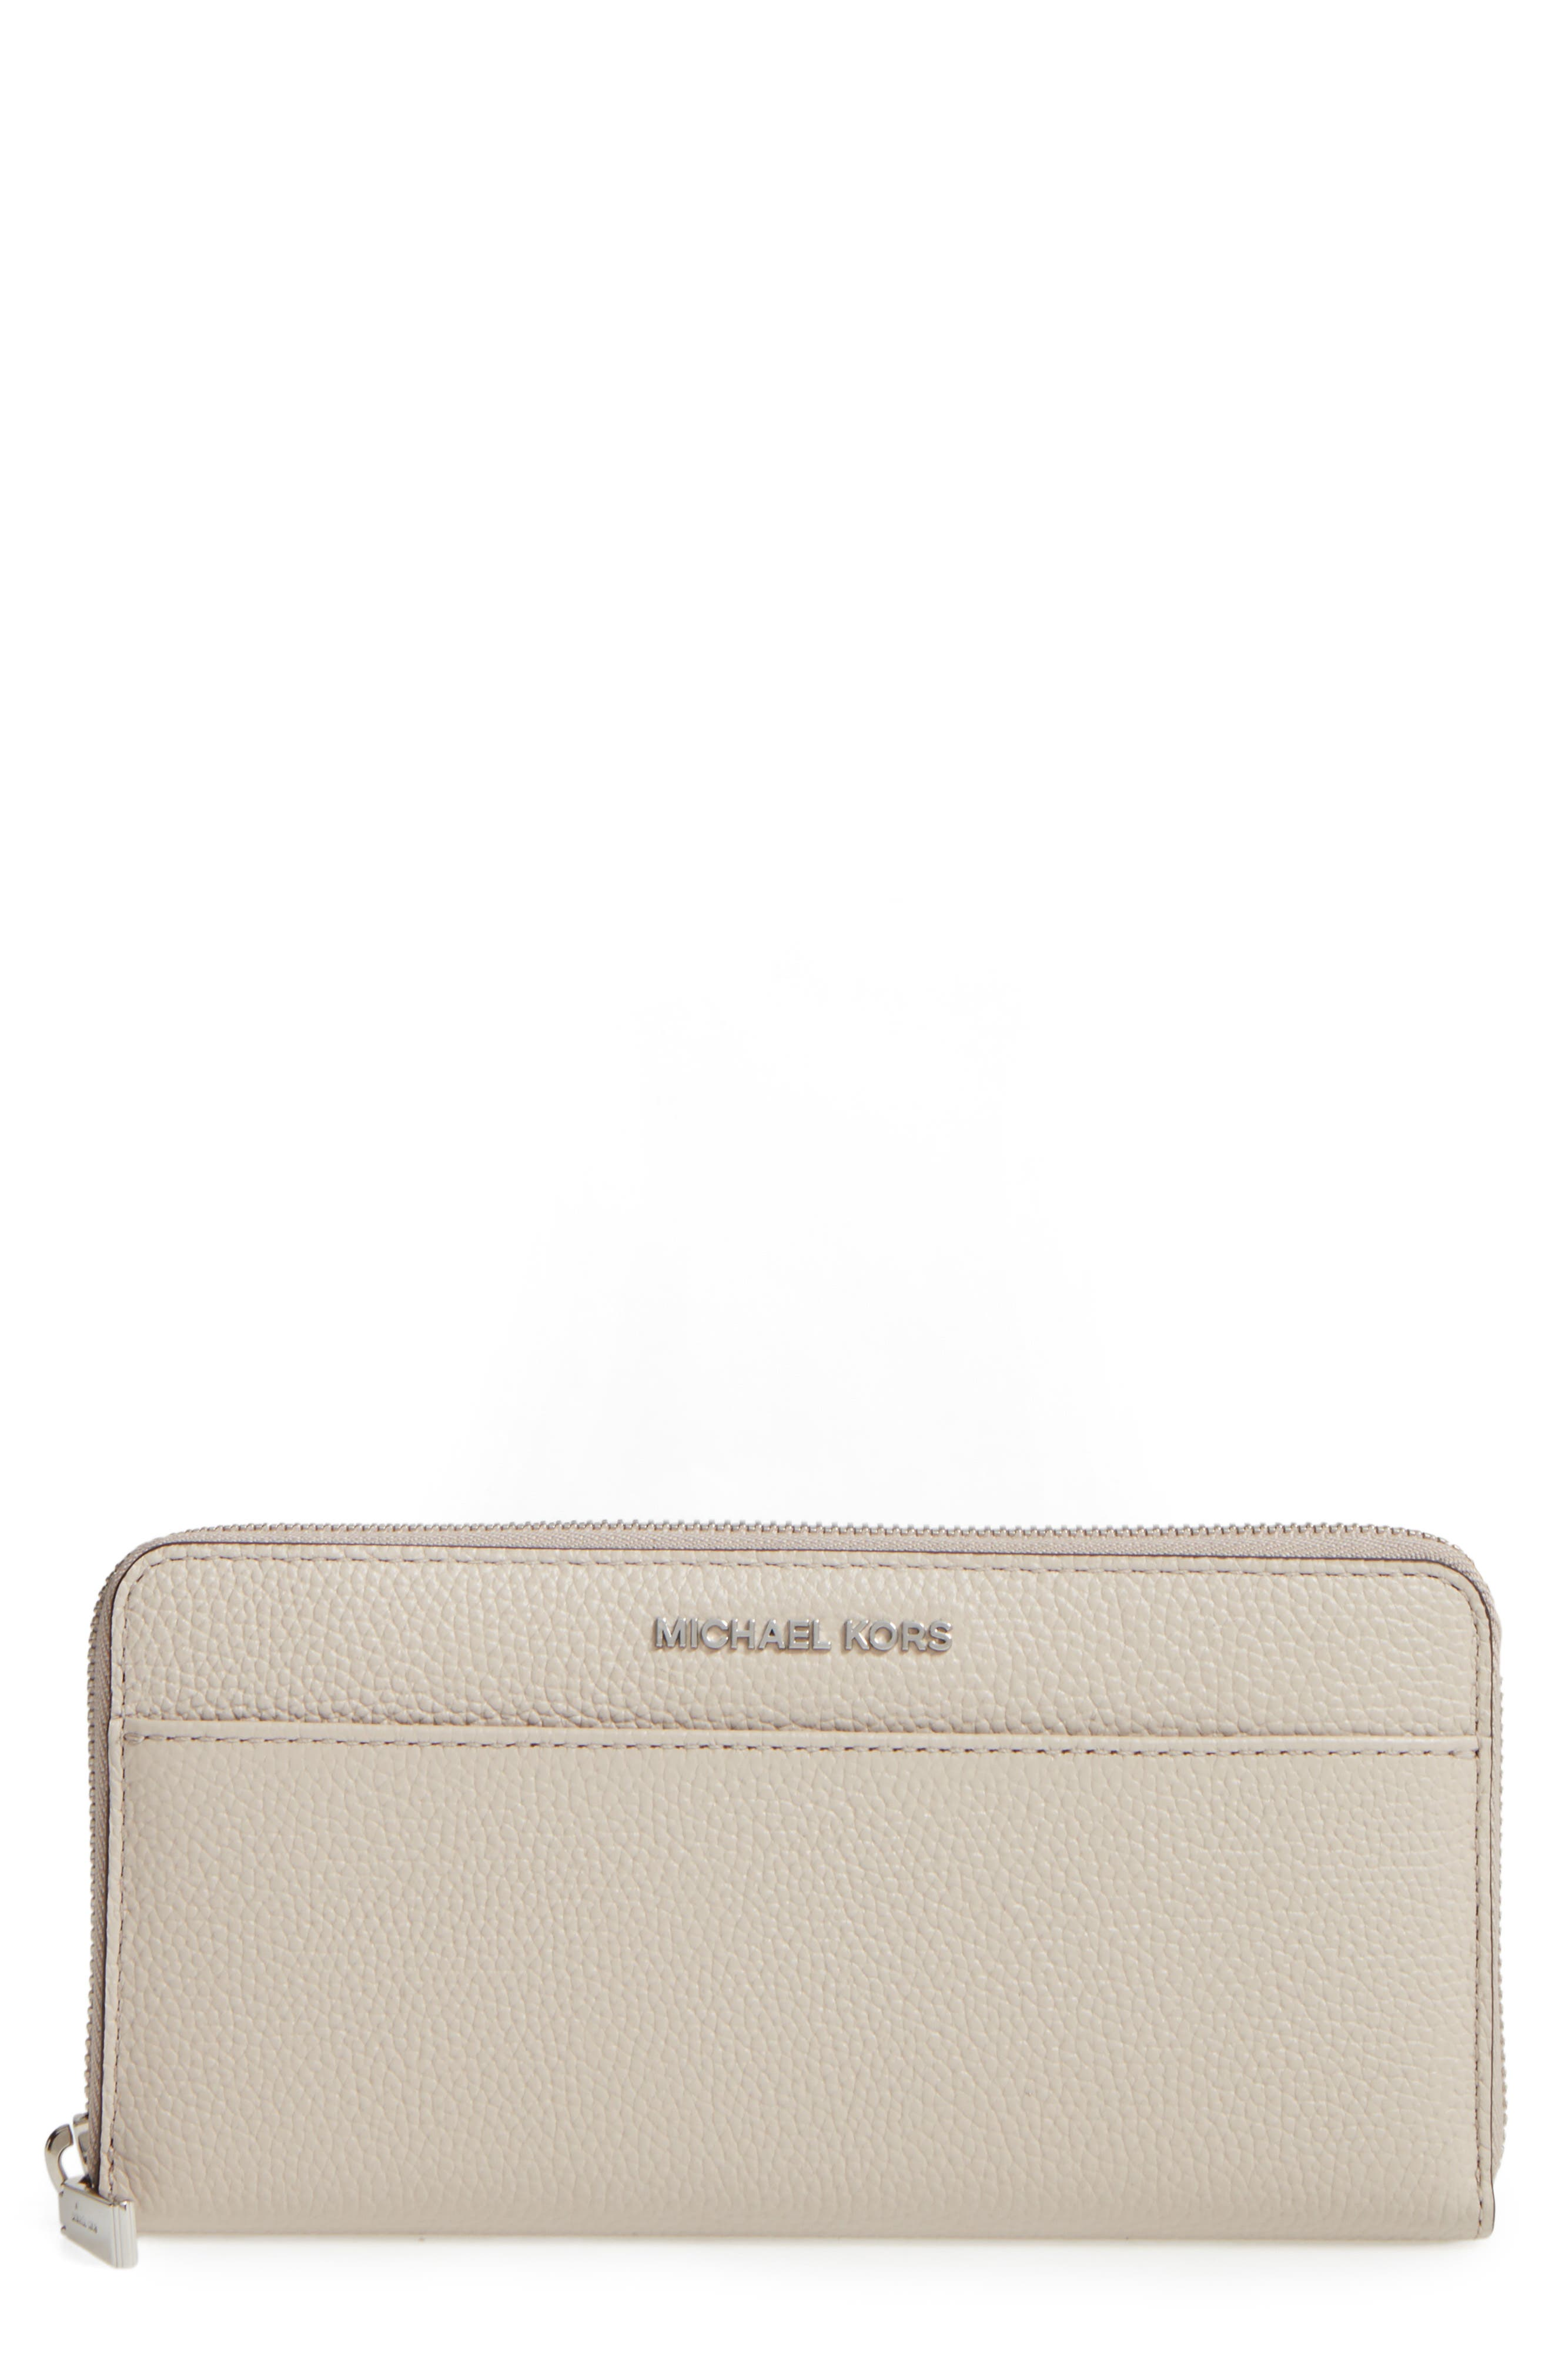 Mercer Leather Continental Wallet,                             Main thumbnail 1, color,